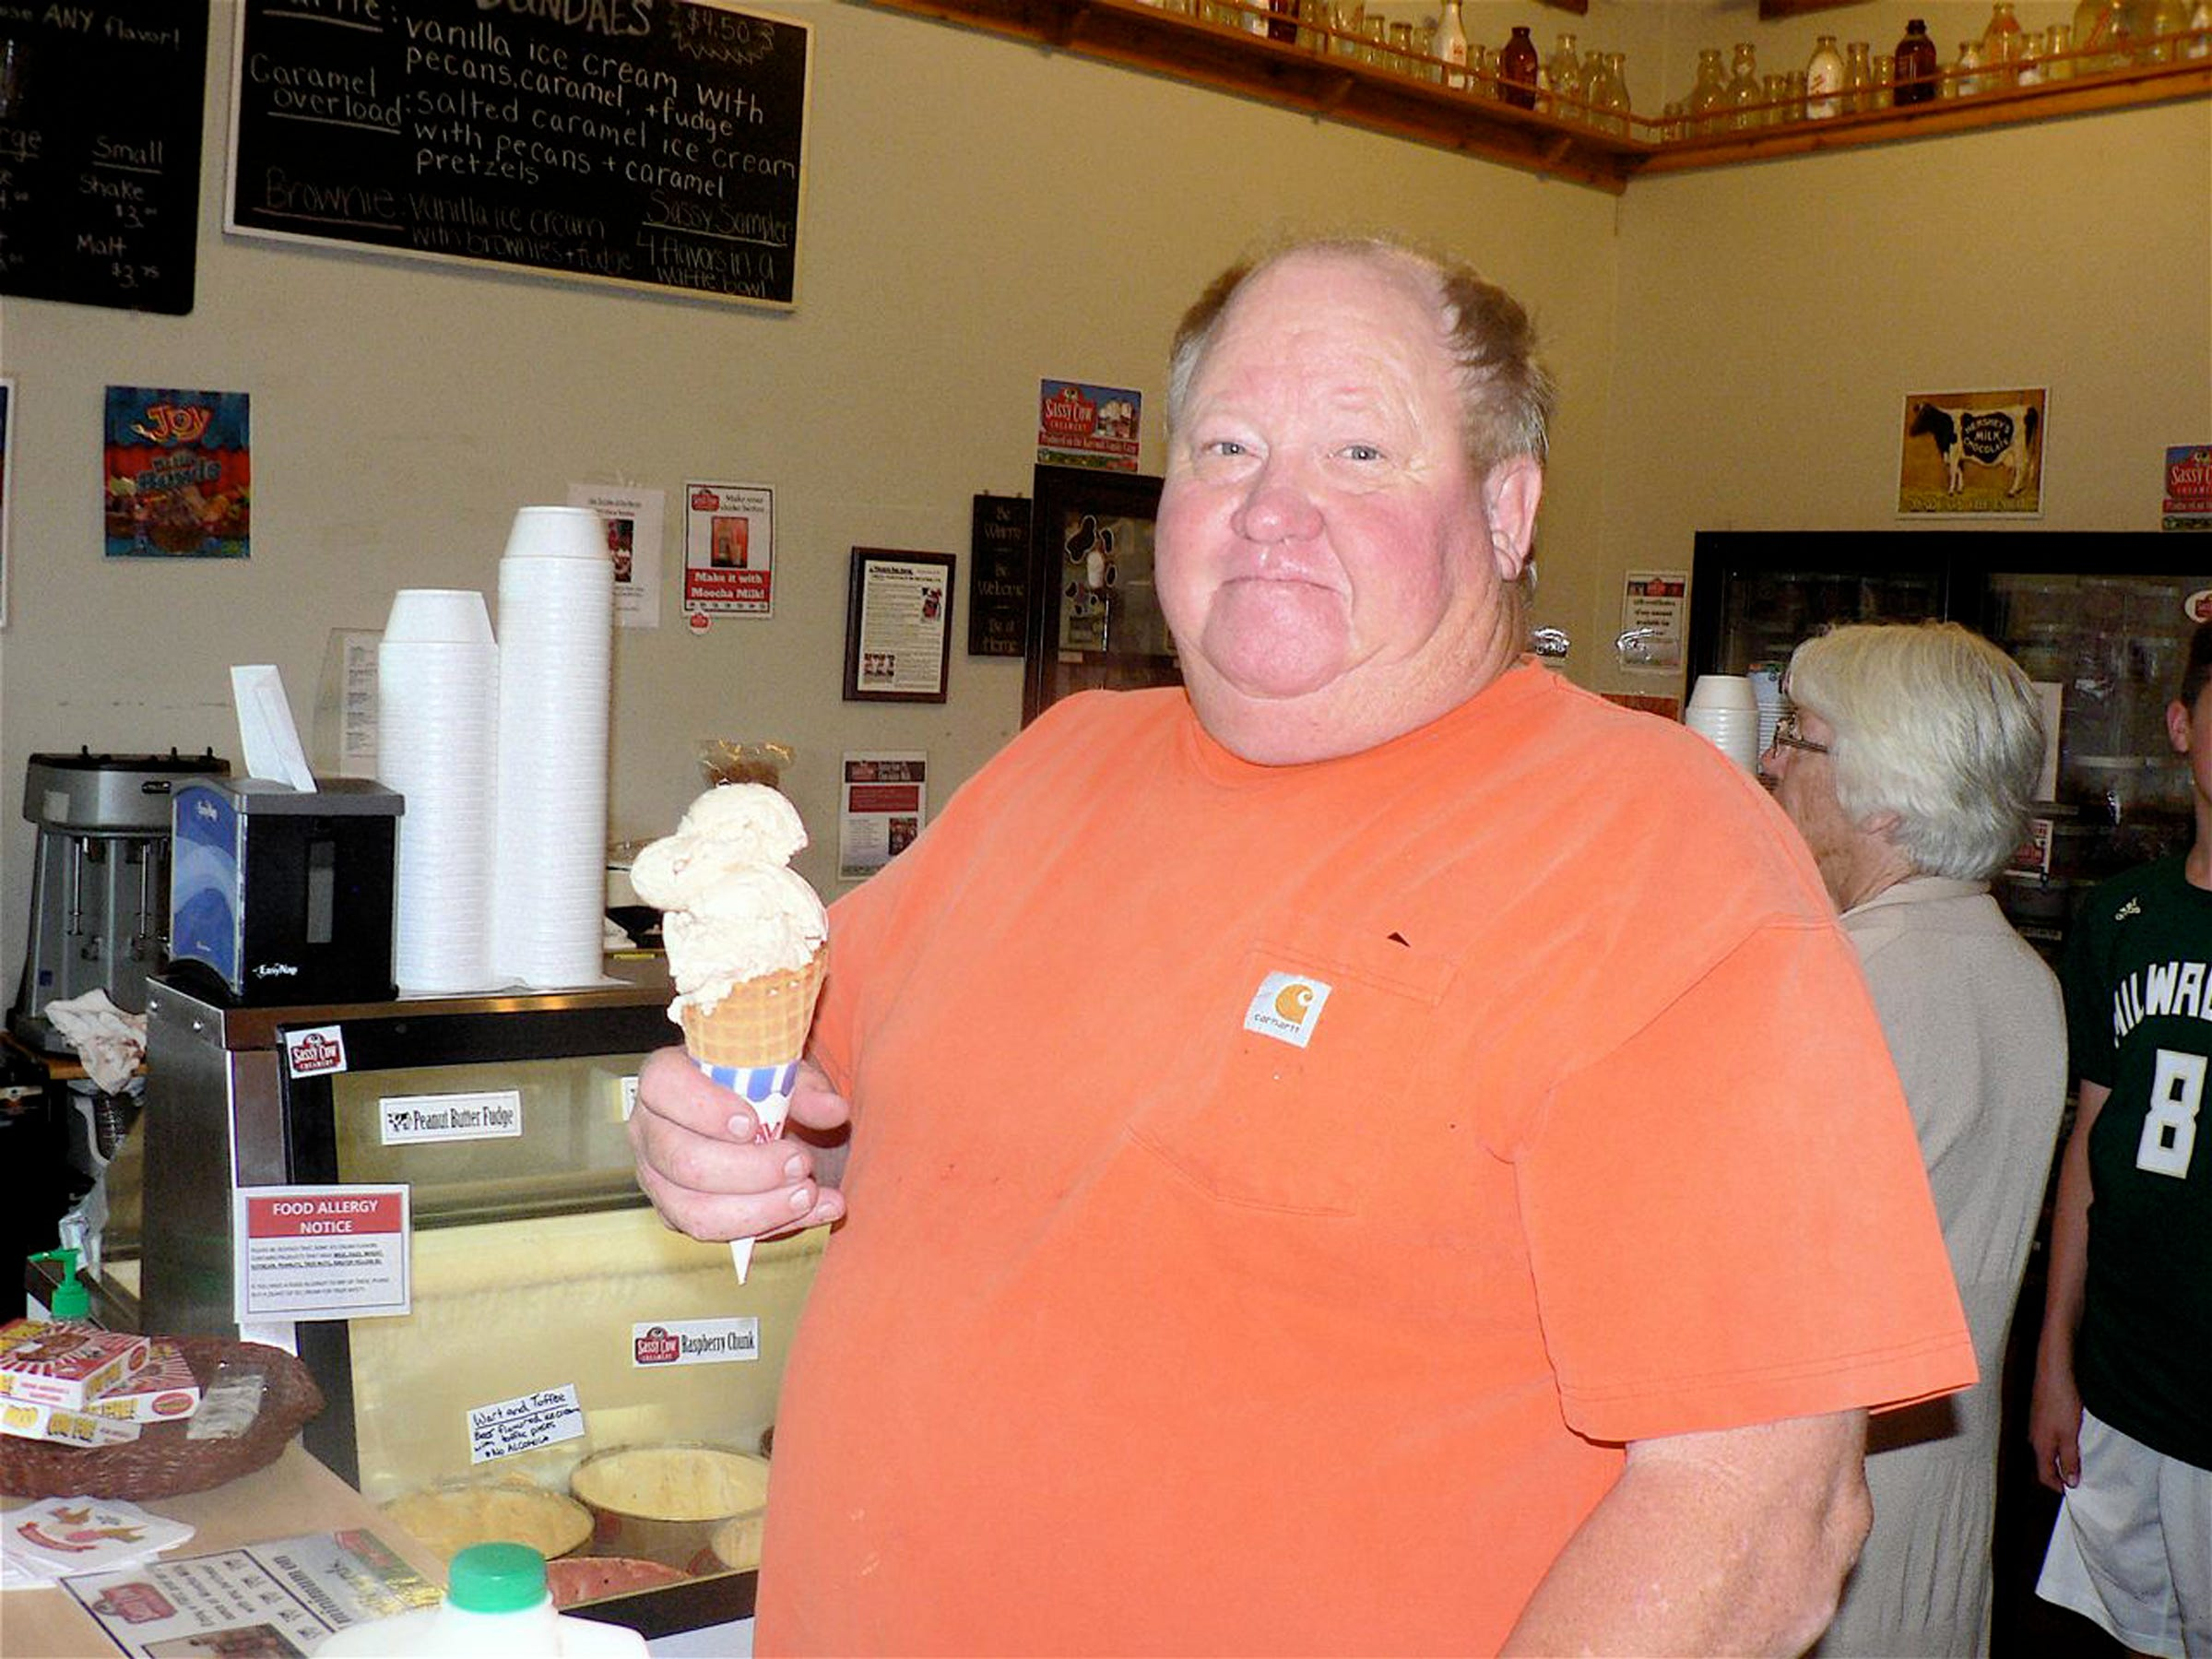 Bigger and older people like this Sun Prairie resident also love ice cream.